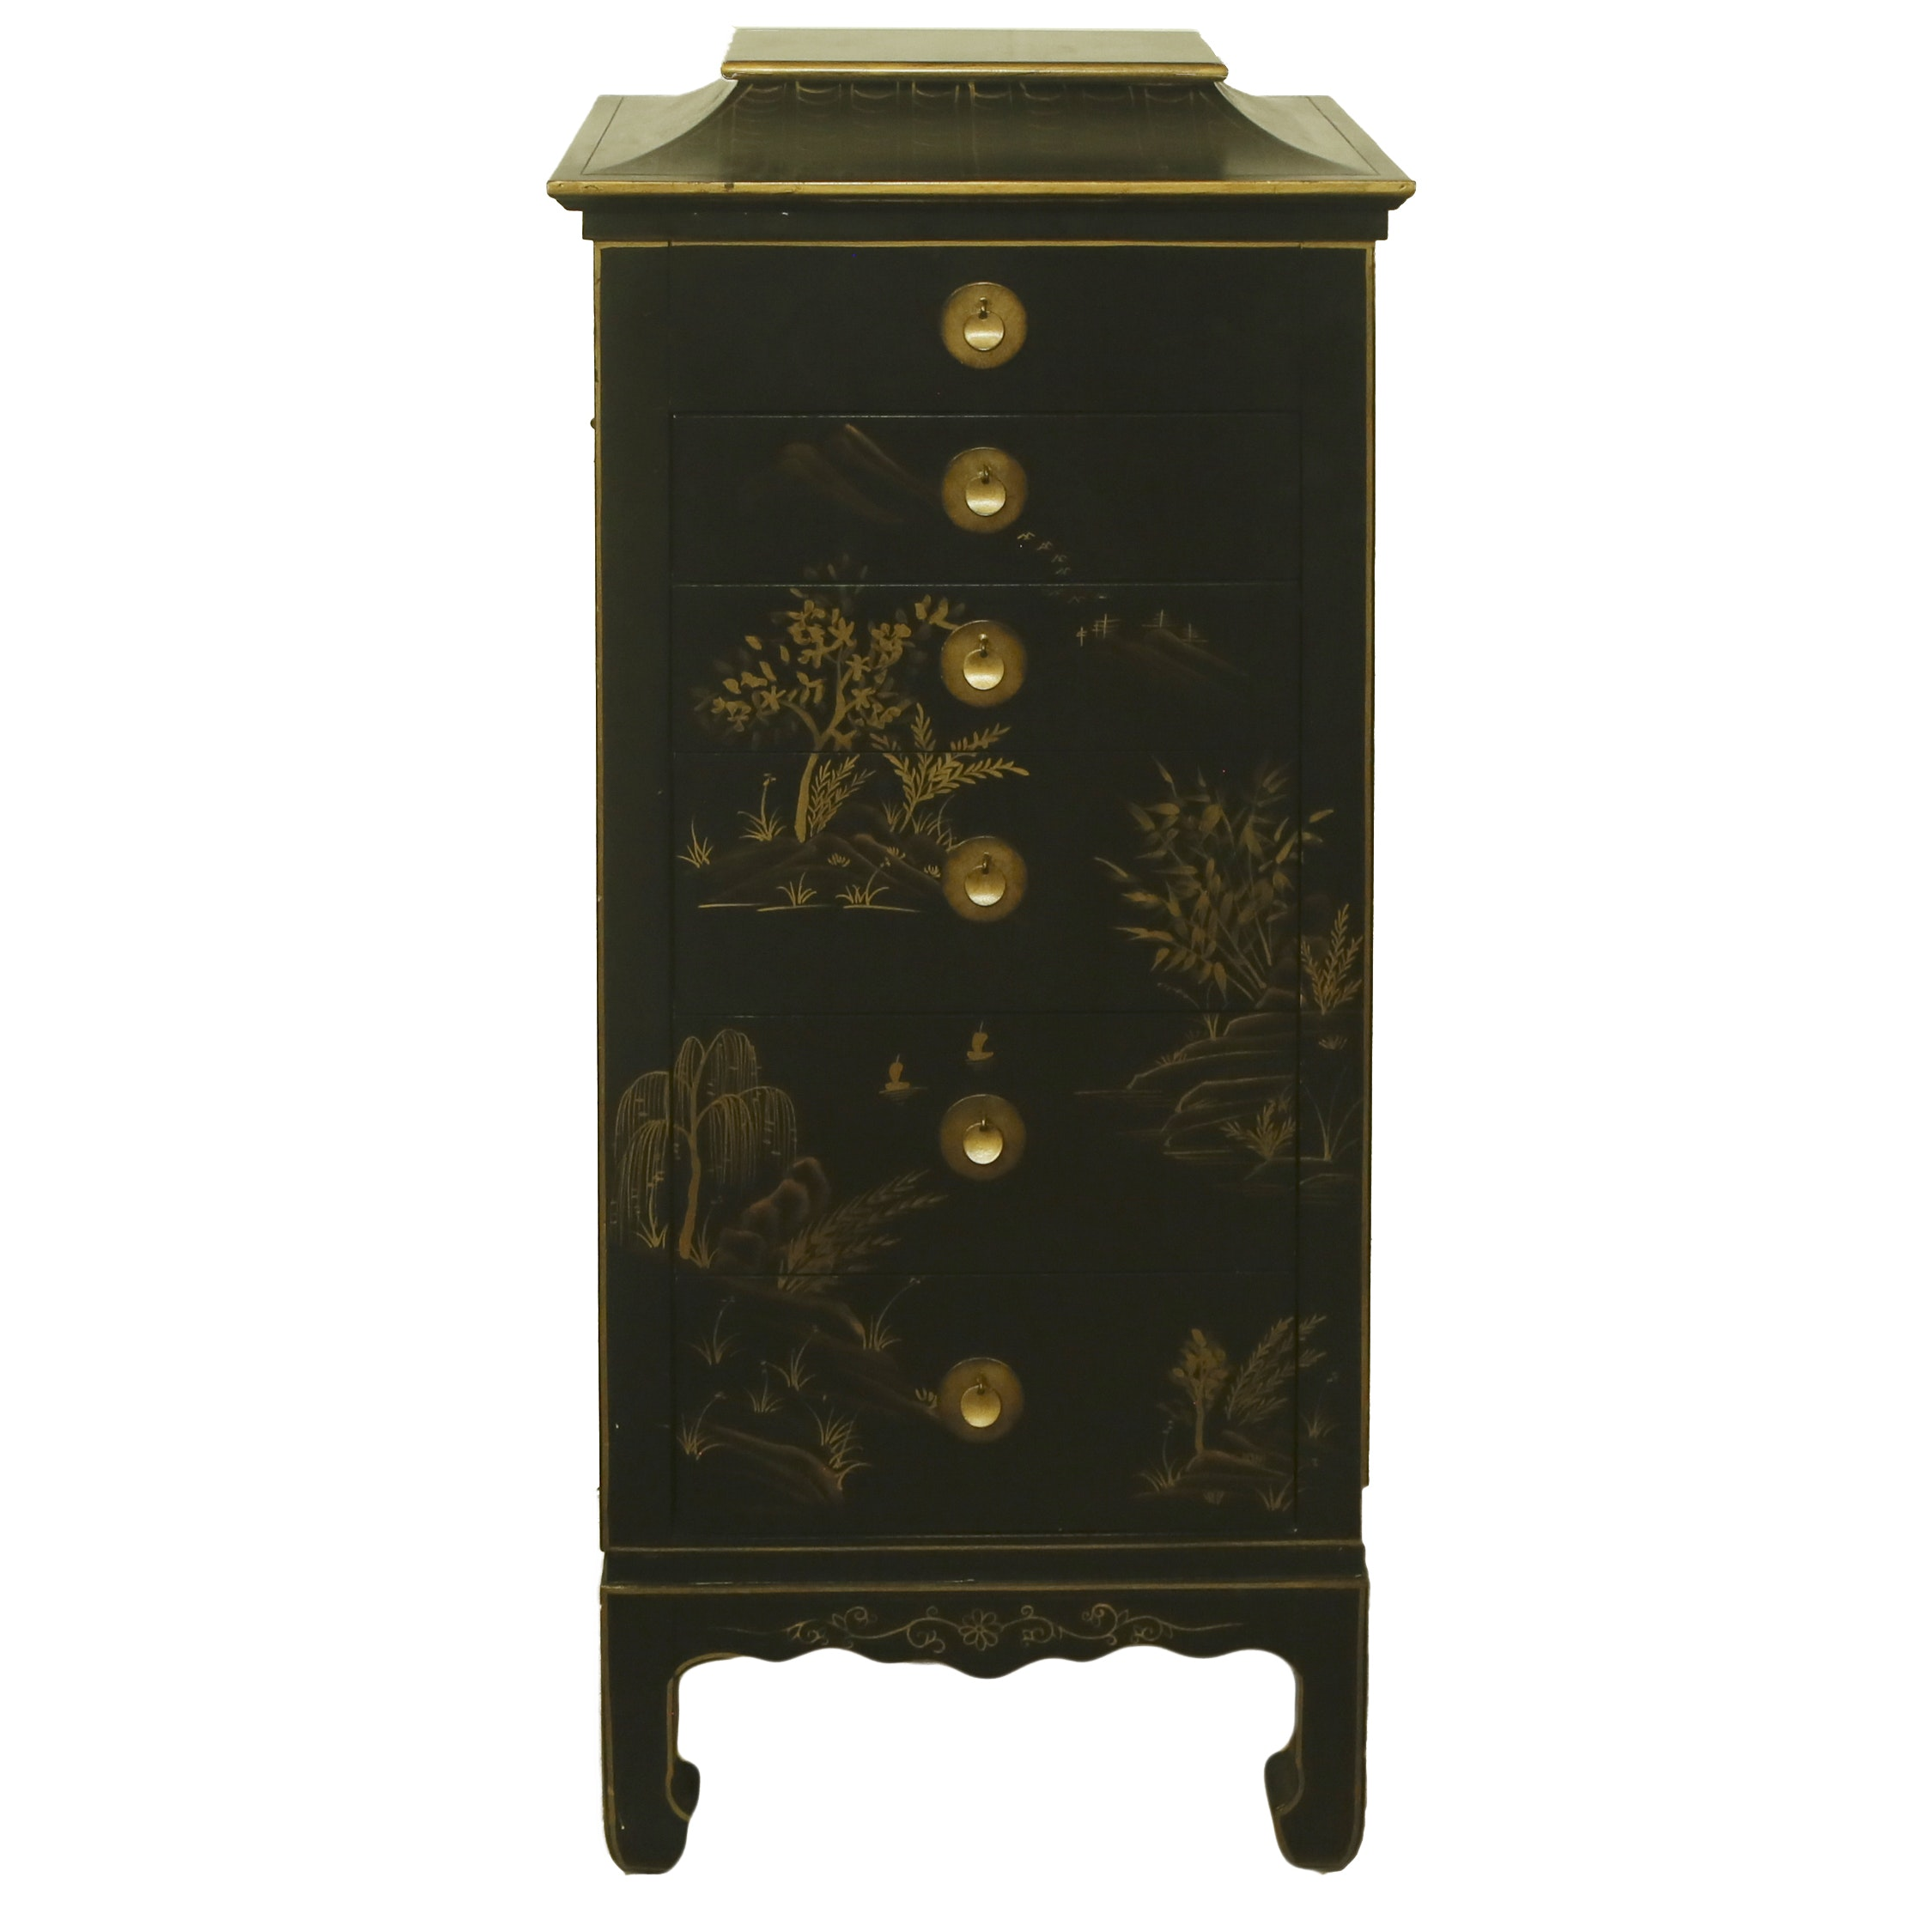 East Asian Style Jewelry Armoire